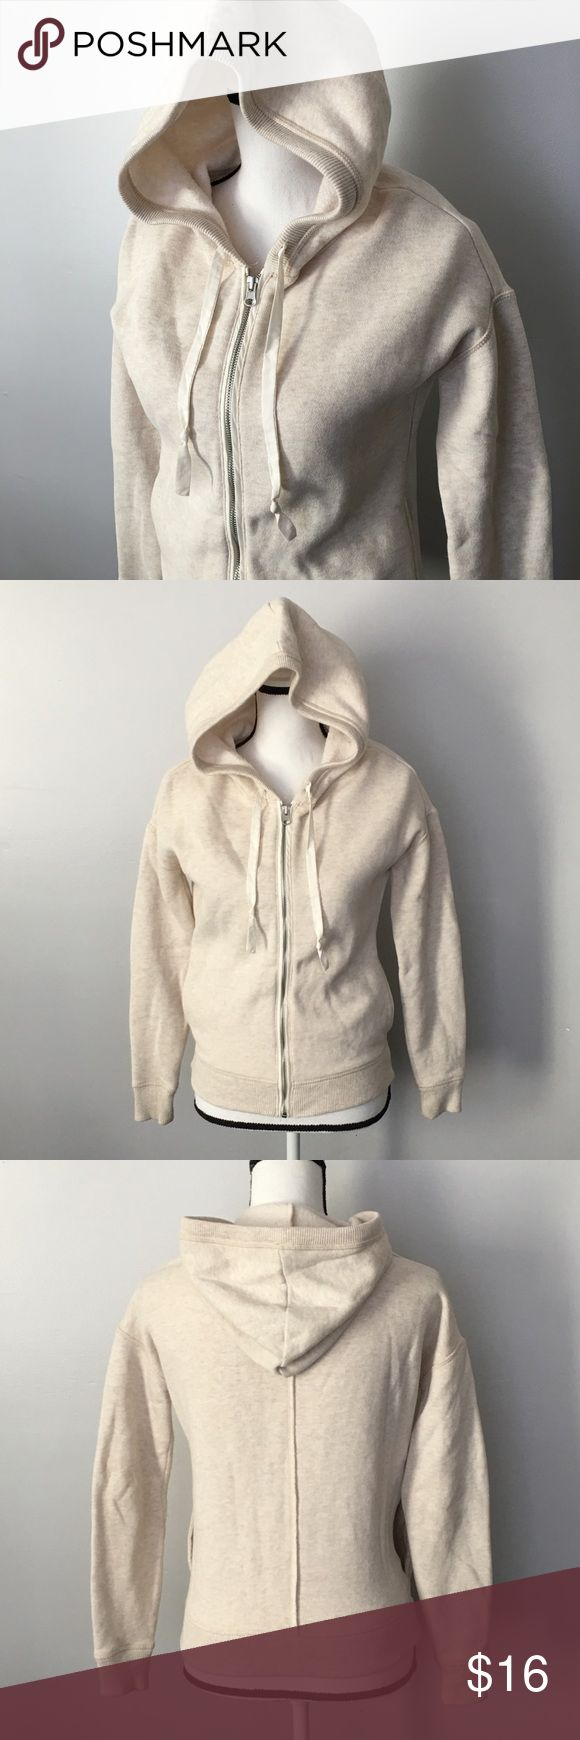 """EUC Aerie Cream Zip Up Hooded Sweatshirt Hoodie Aerie Zip Up Hooded Sweatshirt Size XS Cream Excellent Used Condition 19.5"""" armpit to armpit (measured flat) Approx 21"""" long aerie Tops Sweatshirts & Hoodies"""